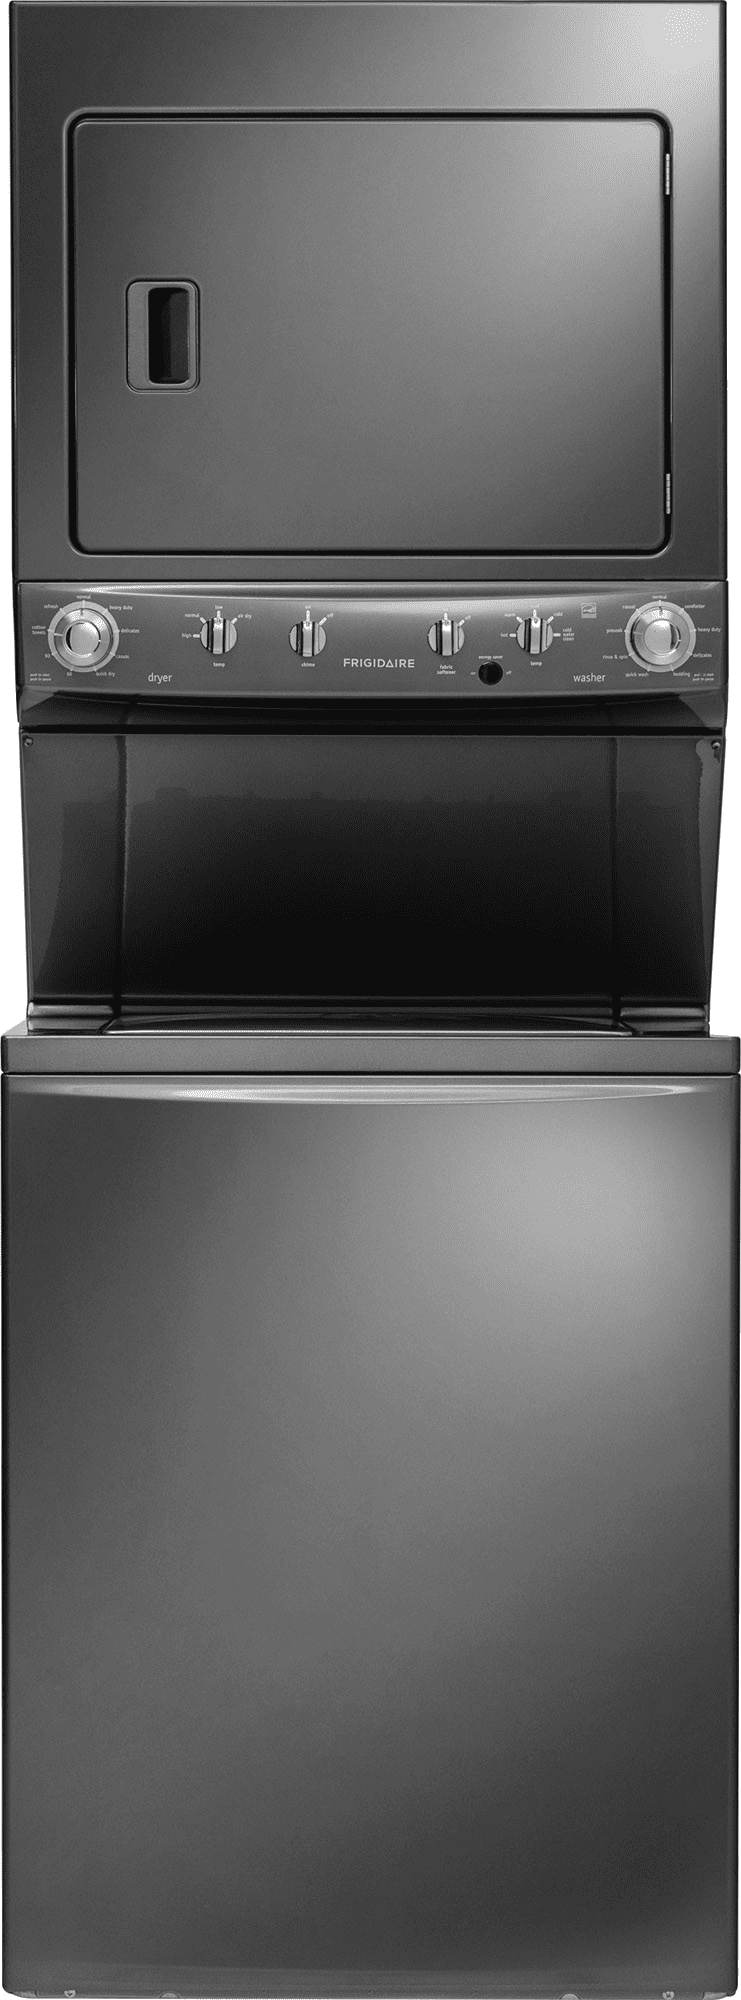 Frigidaire Fflg4033qt 27 Inch Gas Laundry Center With 3 8